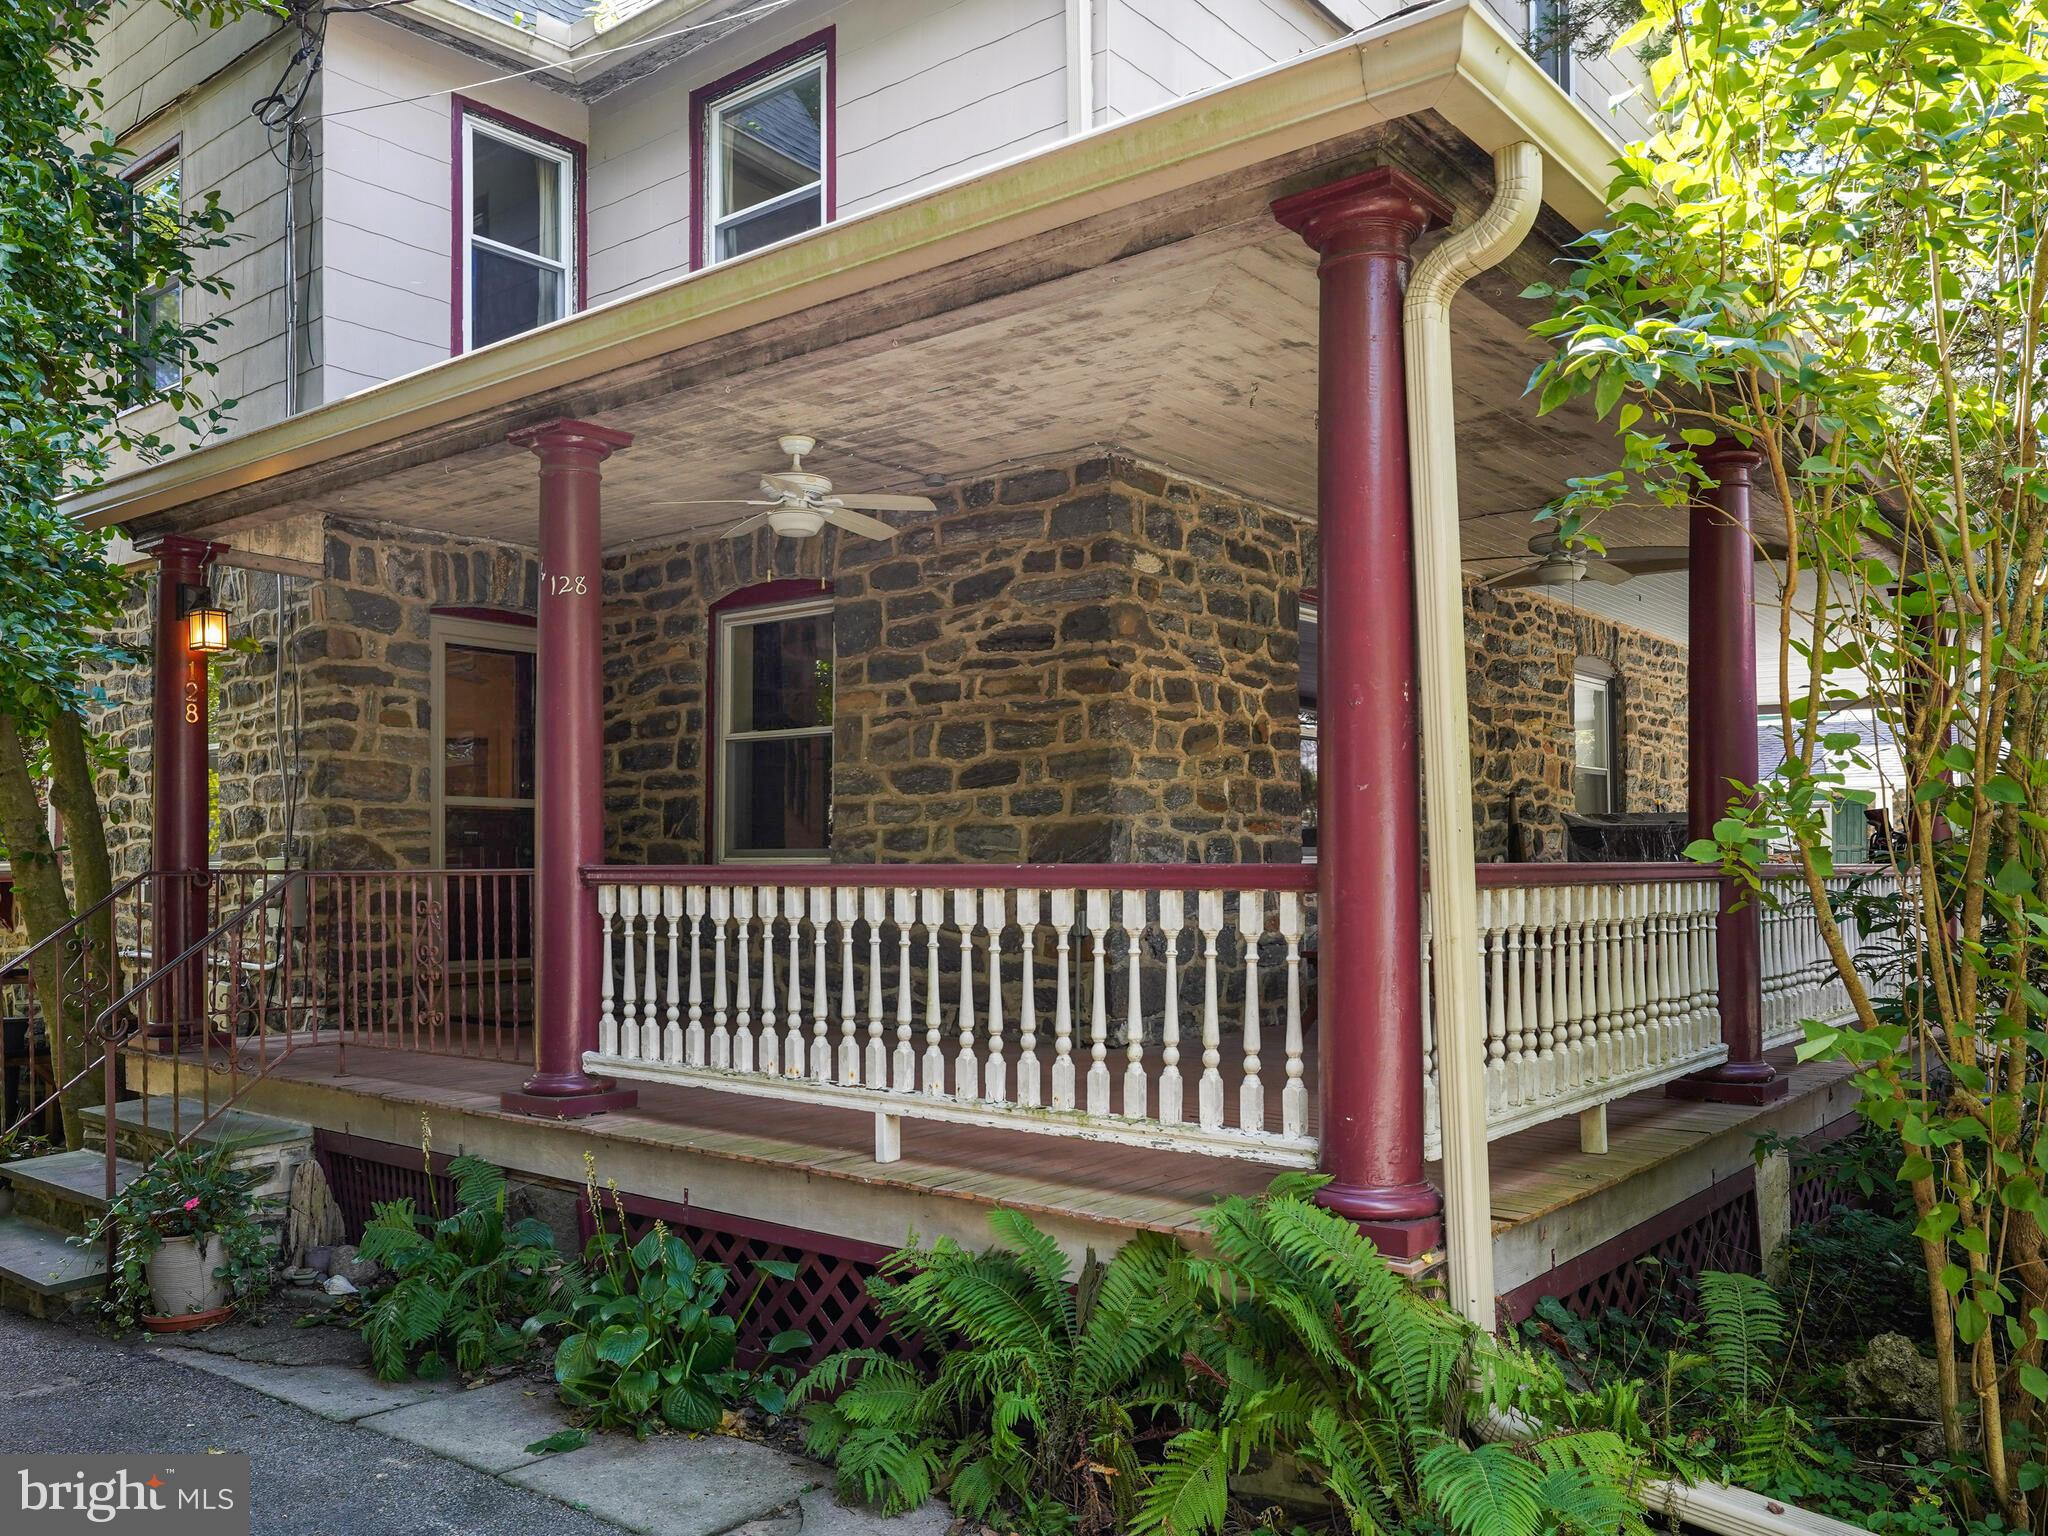 """This big Narberth twin is the definition of a home with good bones. Roof replaced in 2018, exterior pointed in 2013, entire home rewired in 2012, all windows replaced in 2005, boiler/heater replace in 2002, and much more maintenance has already been completed. You will need to do painting and updating, but many vintage features will let you feel the warm heart of this fine home. The open porch spans the front and side of this 3-story home. Here you'll enjoy pleasant meals and friendly conversations with neighbors. The 1st floor has an open flow from living room to dining room and a nice breakfast bar and pass-through to the eat-in kitchen. The dining room bay window has  beautiful 3-panel stained & leaded glass transom windows. A mudroom and half bath complete the 1st floor. Use the back staircase from the kitchen or the main stairway to access the 2nd floor. It has 3 large bedrooms and 1 full bath. A 2nd bath can be added in the middle bedroom to make a main suite with the front bedroom. The 3rd floor has 2 large bedrooms (private """"work from home"""" space) and a big landing that could accommodate another bath. The laundry is in the unfinished basement. There are also handy work benches and several shelves in the basement. The private back yard includes a low-maintenance koi pond, a playhouse for kids, raised bed gardens, and many beautiful perennial plants. The 2-car driveway is a nice feature. The home access the excellent Lower Merion School District. And, of course, it has all the conveniences of Narberth - 1 block to the train station and shopping district, a short walk to the playground, ball fields, tennis courts, basketball courts, and the Narberth Library. And take a pleasant walk through Shortidge Park just 3 blocks away in Wynnewood. Come make this your great new home in Narberth. Showings begin Tuesday 9/21 and any offers will be reviewed beginning 2:00 PM Saturday 9/25"""